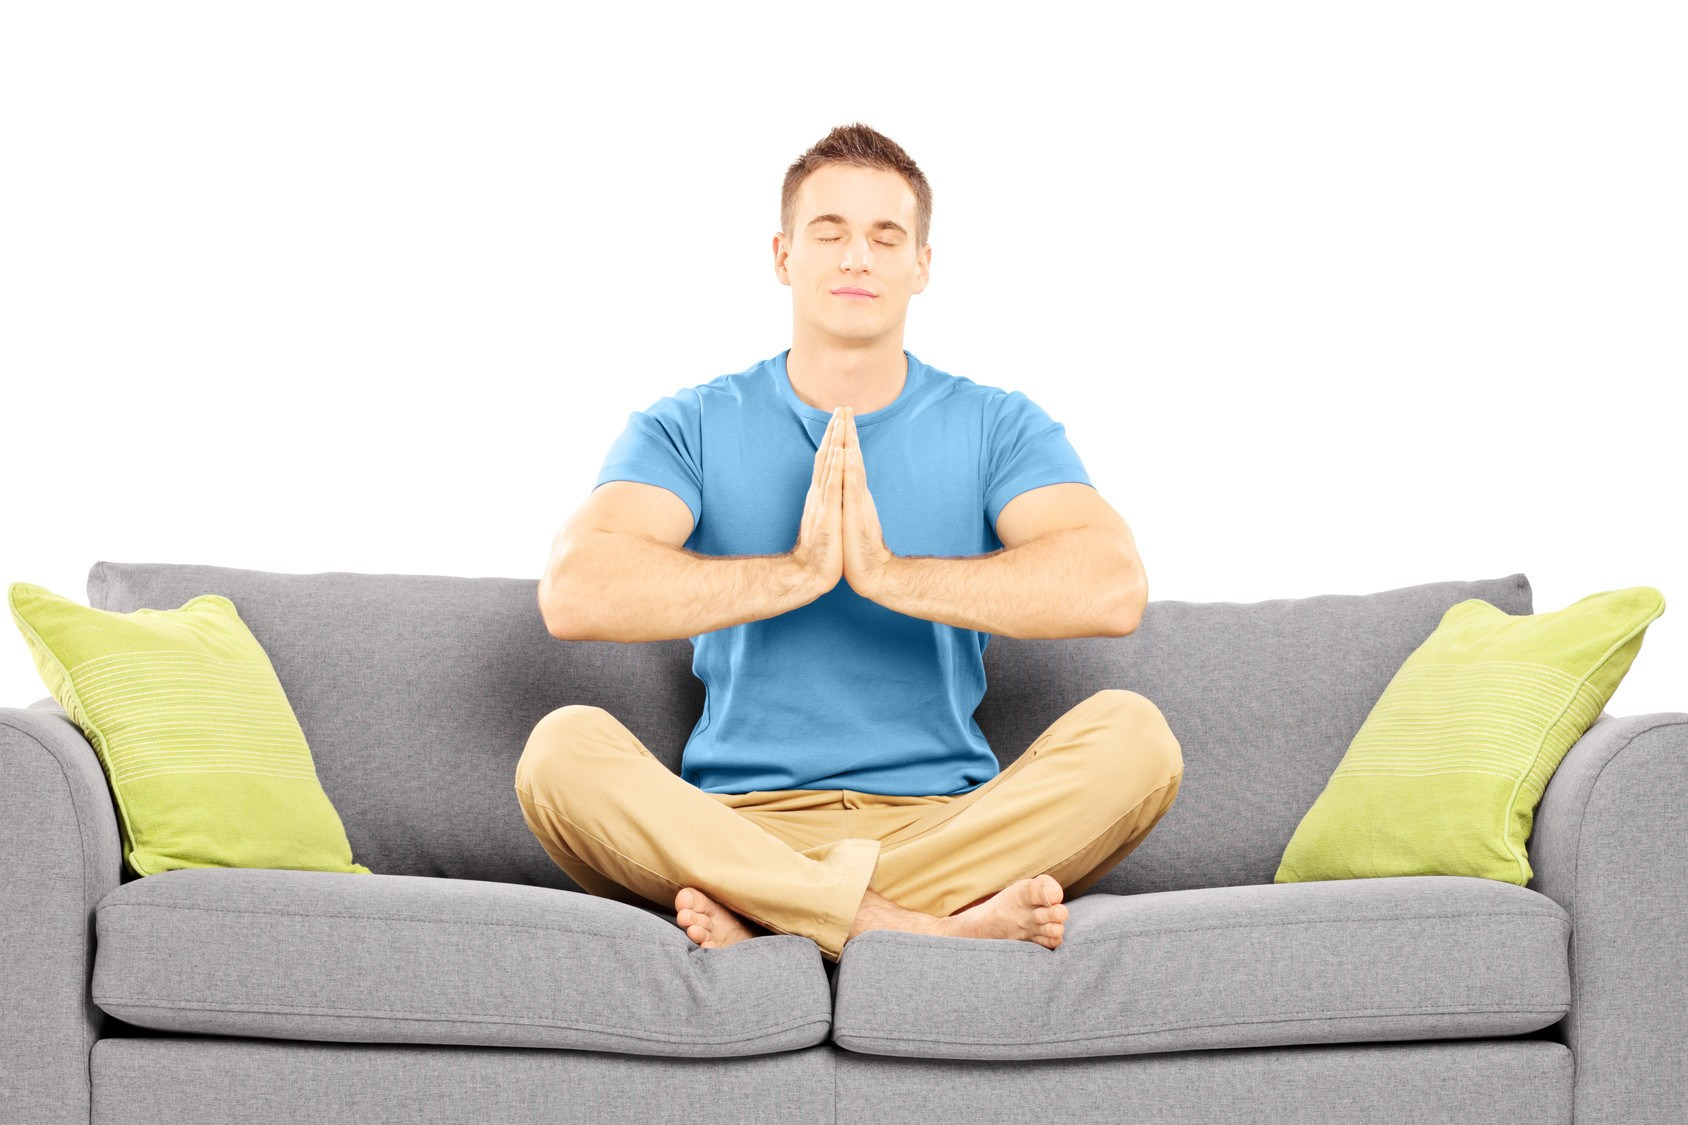 Choosing The Right Meditation For You